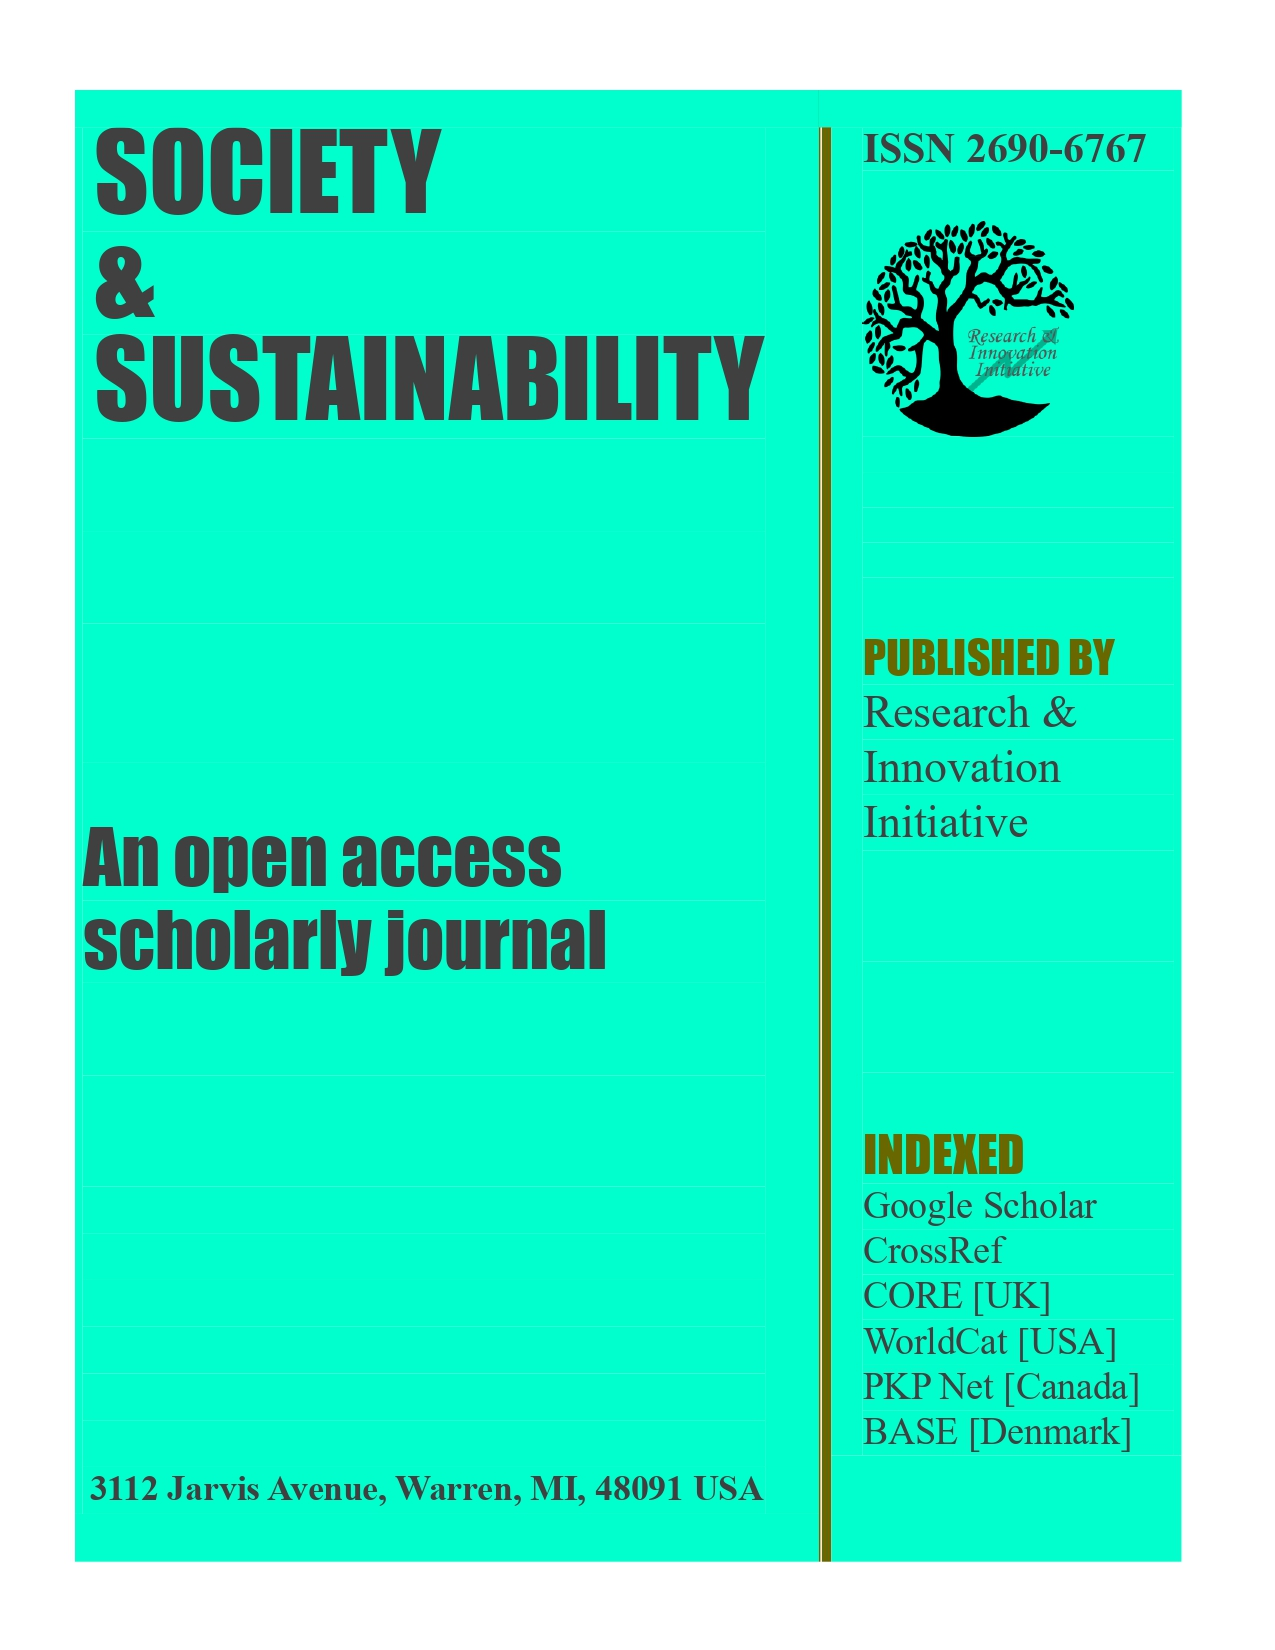 Society & Sustainability